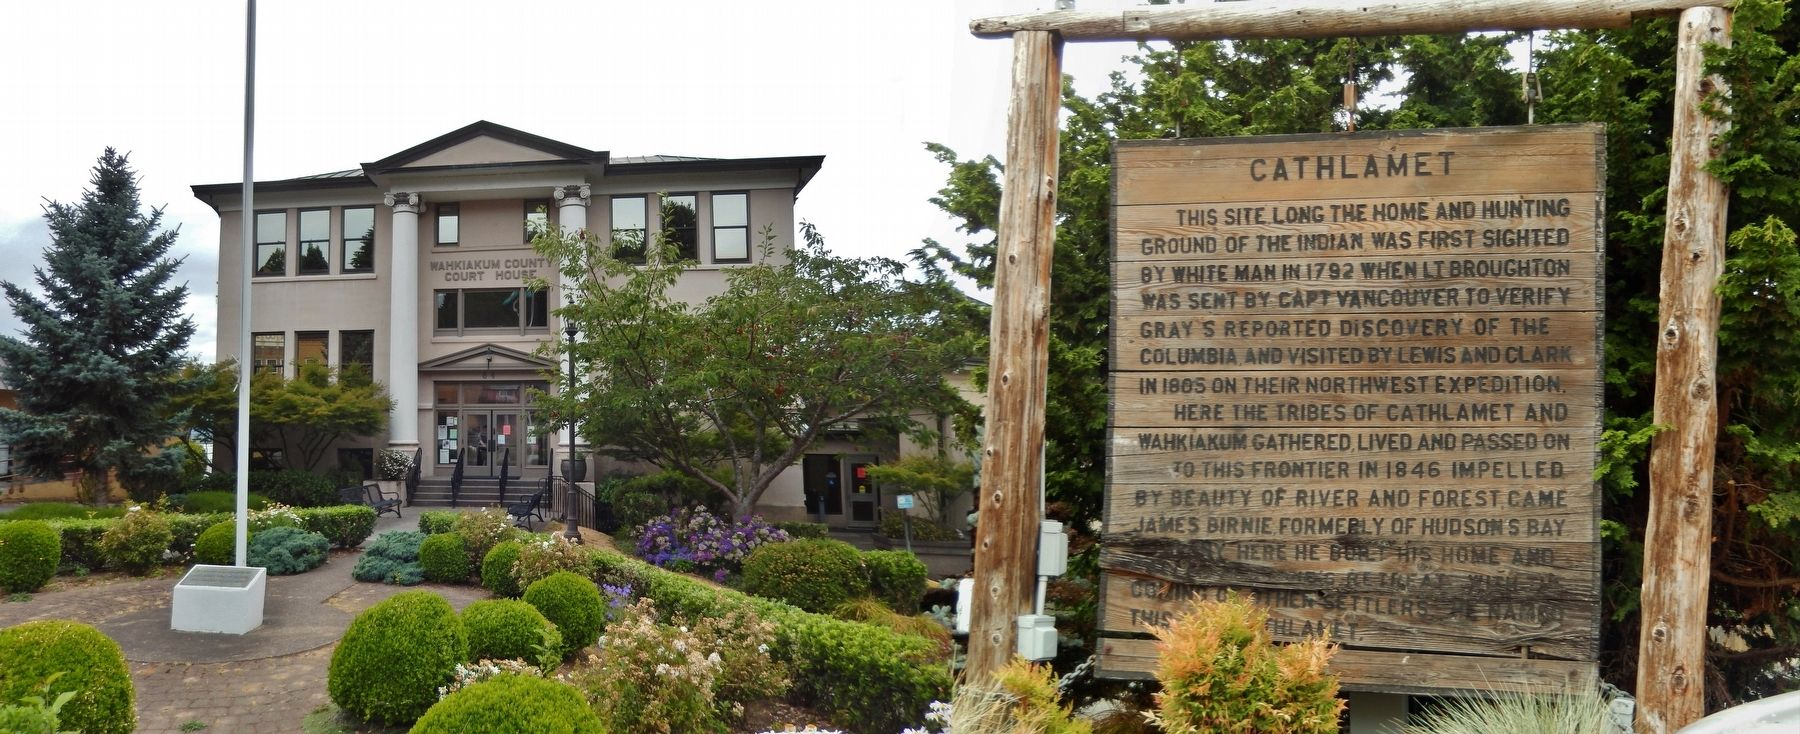 Cathlamet Marker (<i>wide view; Wahkiakum County Courthouse in background</i>) image. Click for full size.